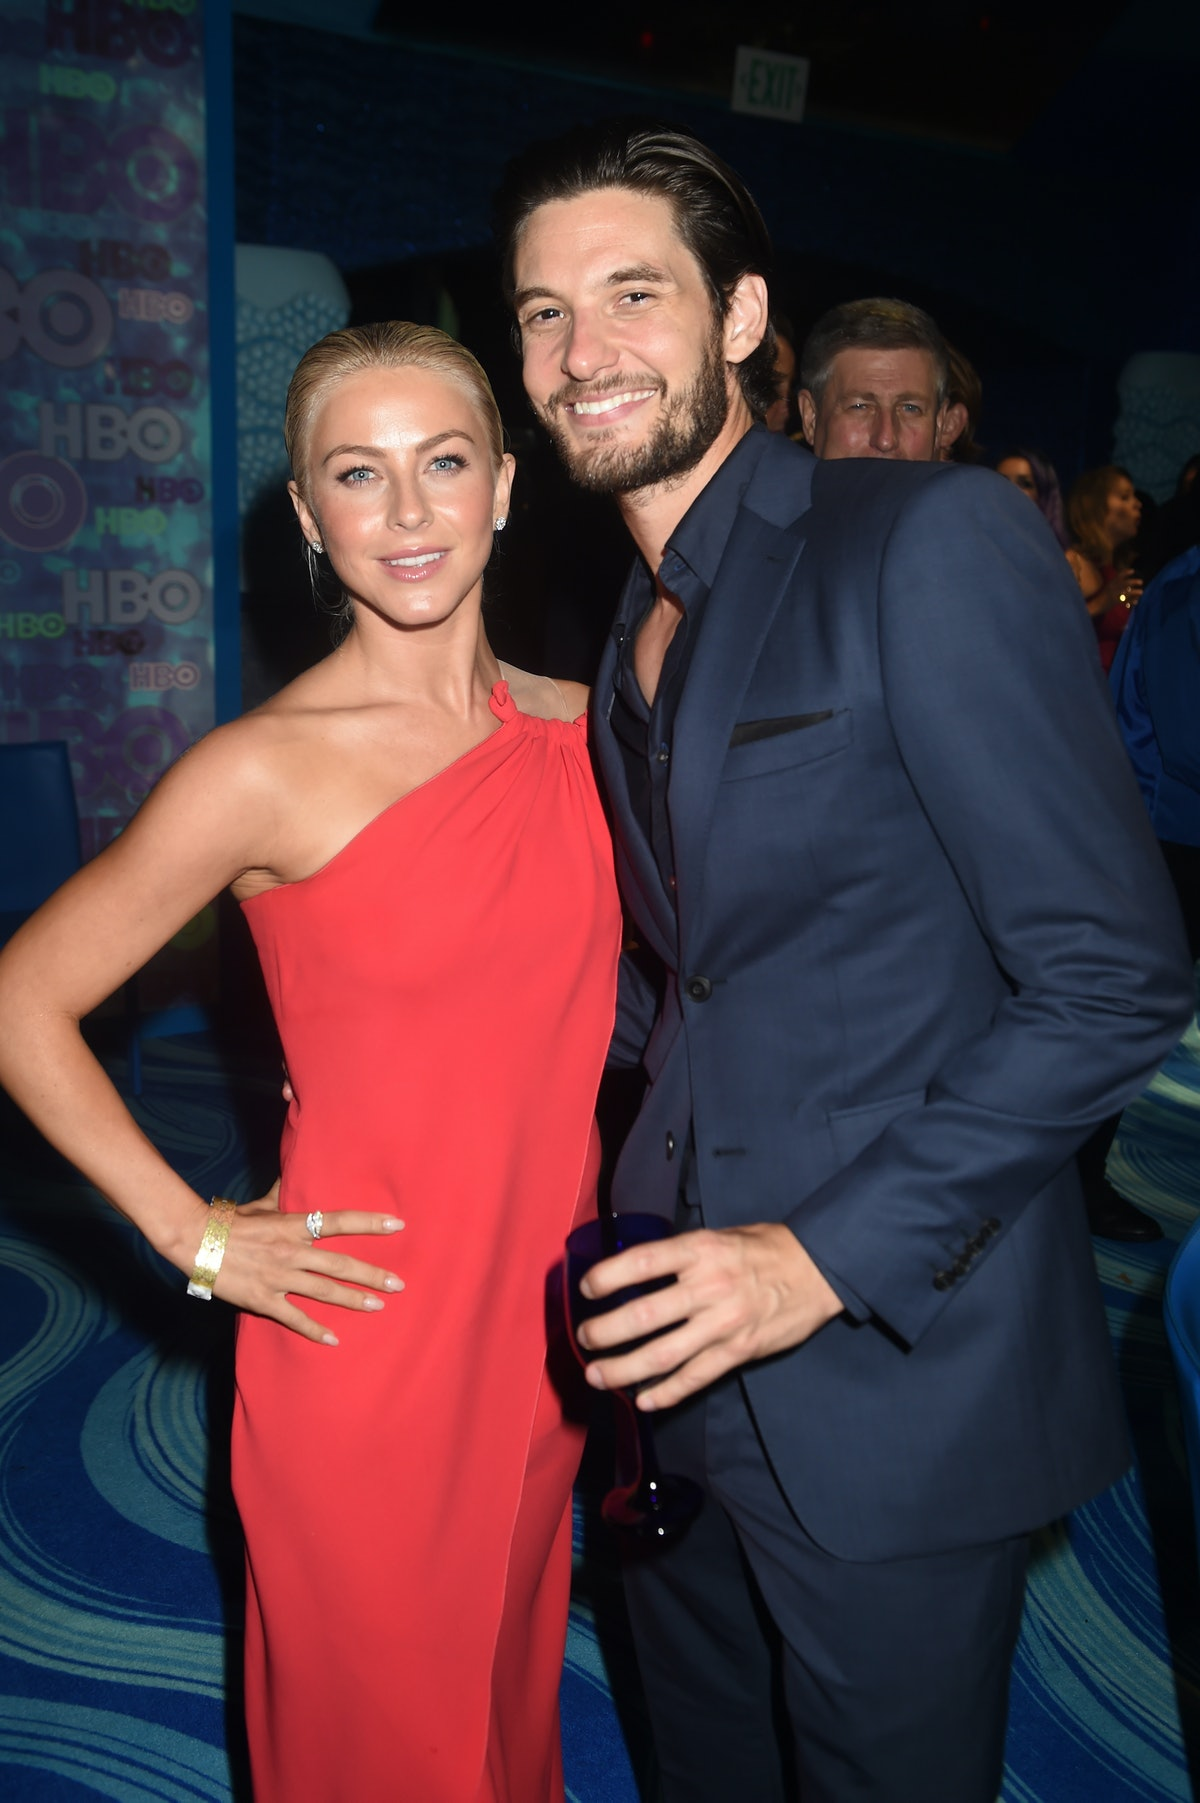 LOS ANGELES, CA - SEPTEMBER 18: Actors Julianne Hough (L) and Ben Barnes attend HBO's Official 2016 Emmy After Party at The Plaza at the Pacific Design Center on September 18, 2016 in Los Angeles, California.  (Photo by Jeff Kravitz/FilmMagic)